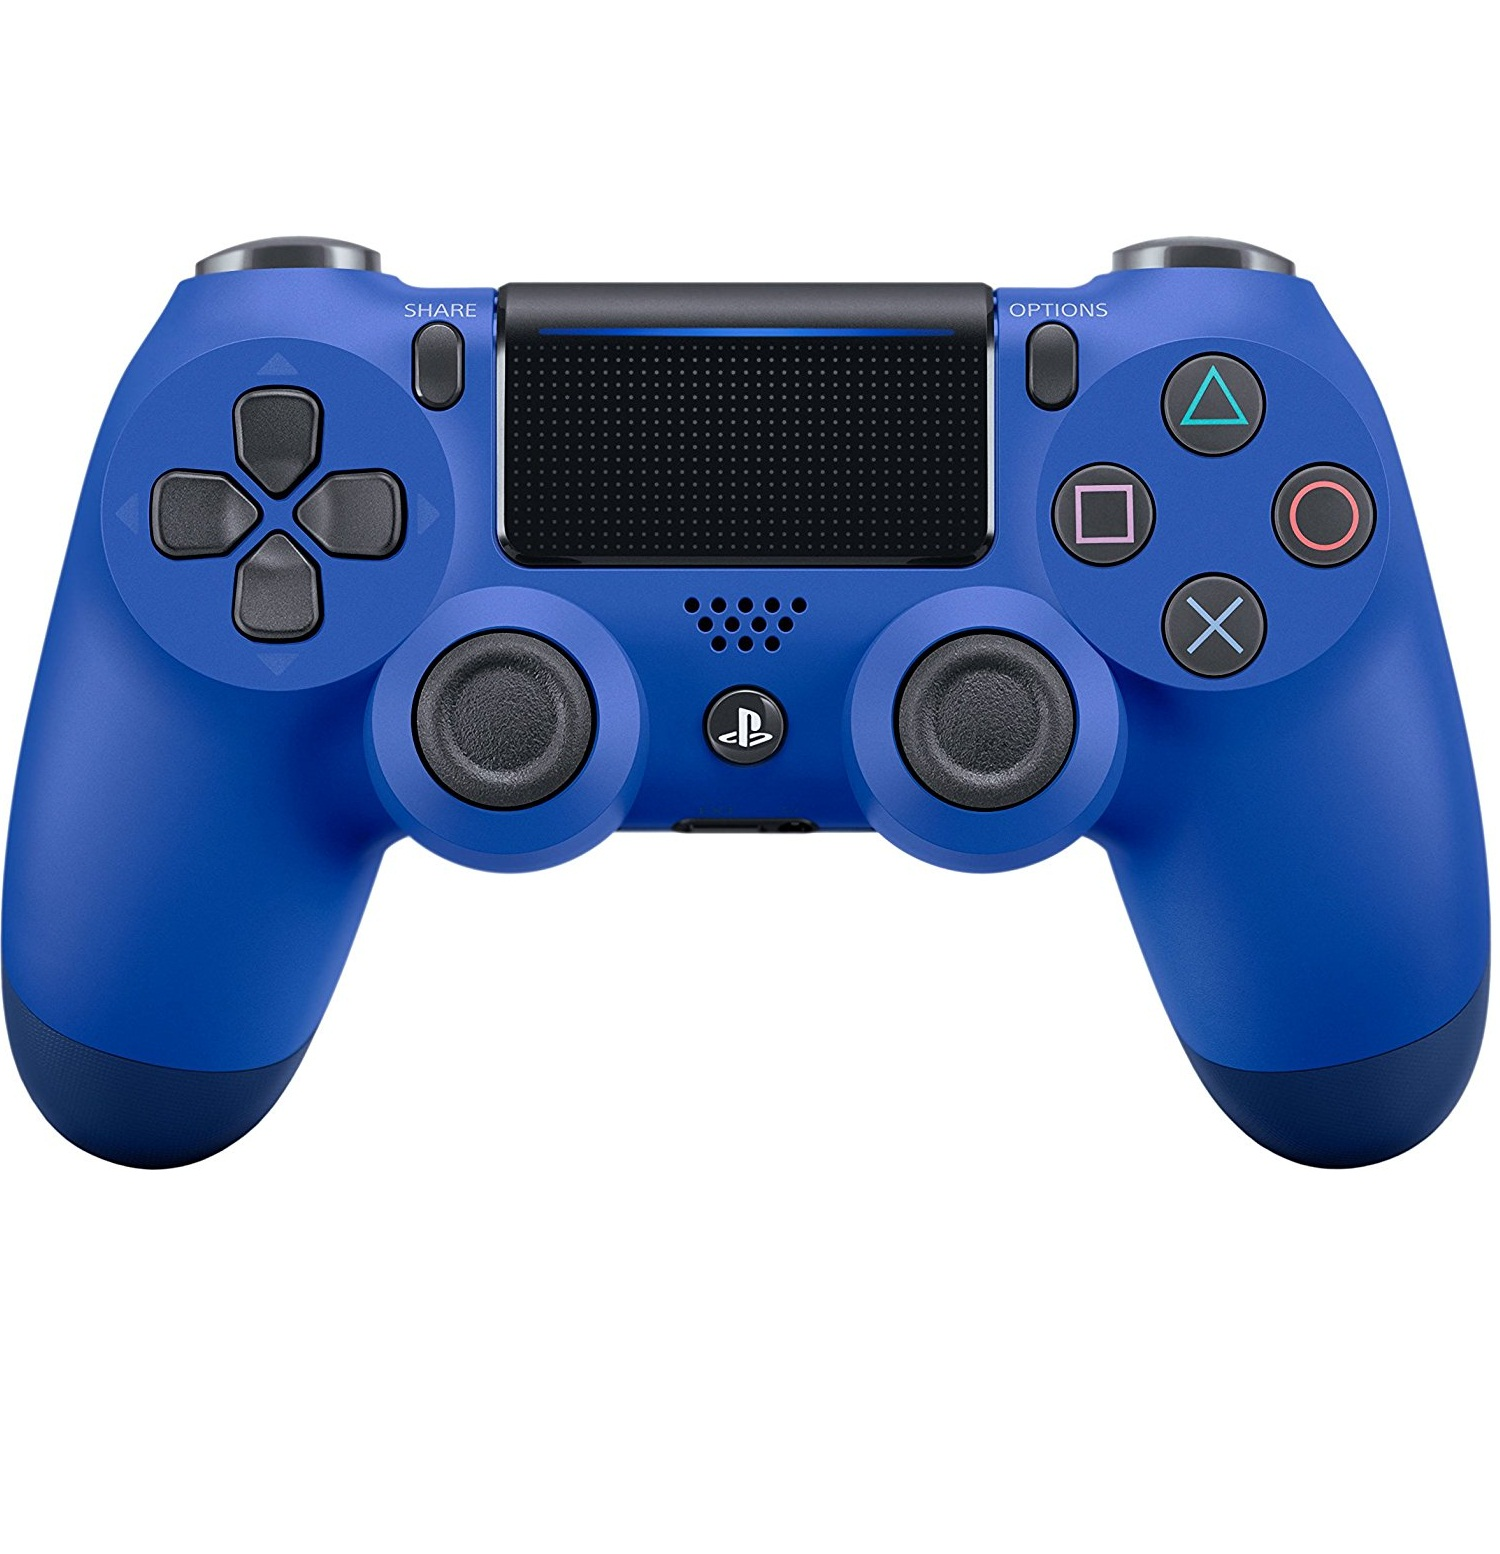 tay-choi-game-dualshock-4-xanh-lam-wave-blue-cuh-zct2g